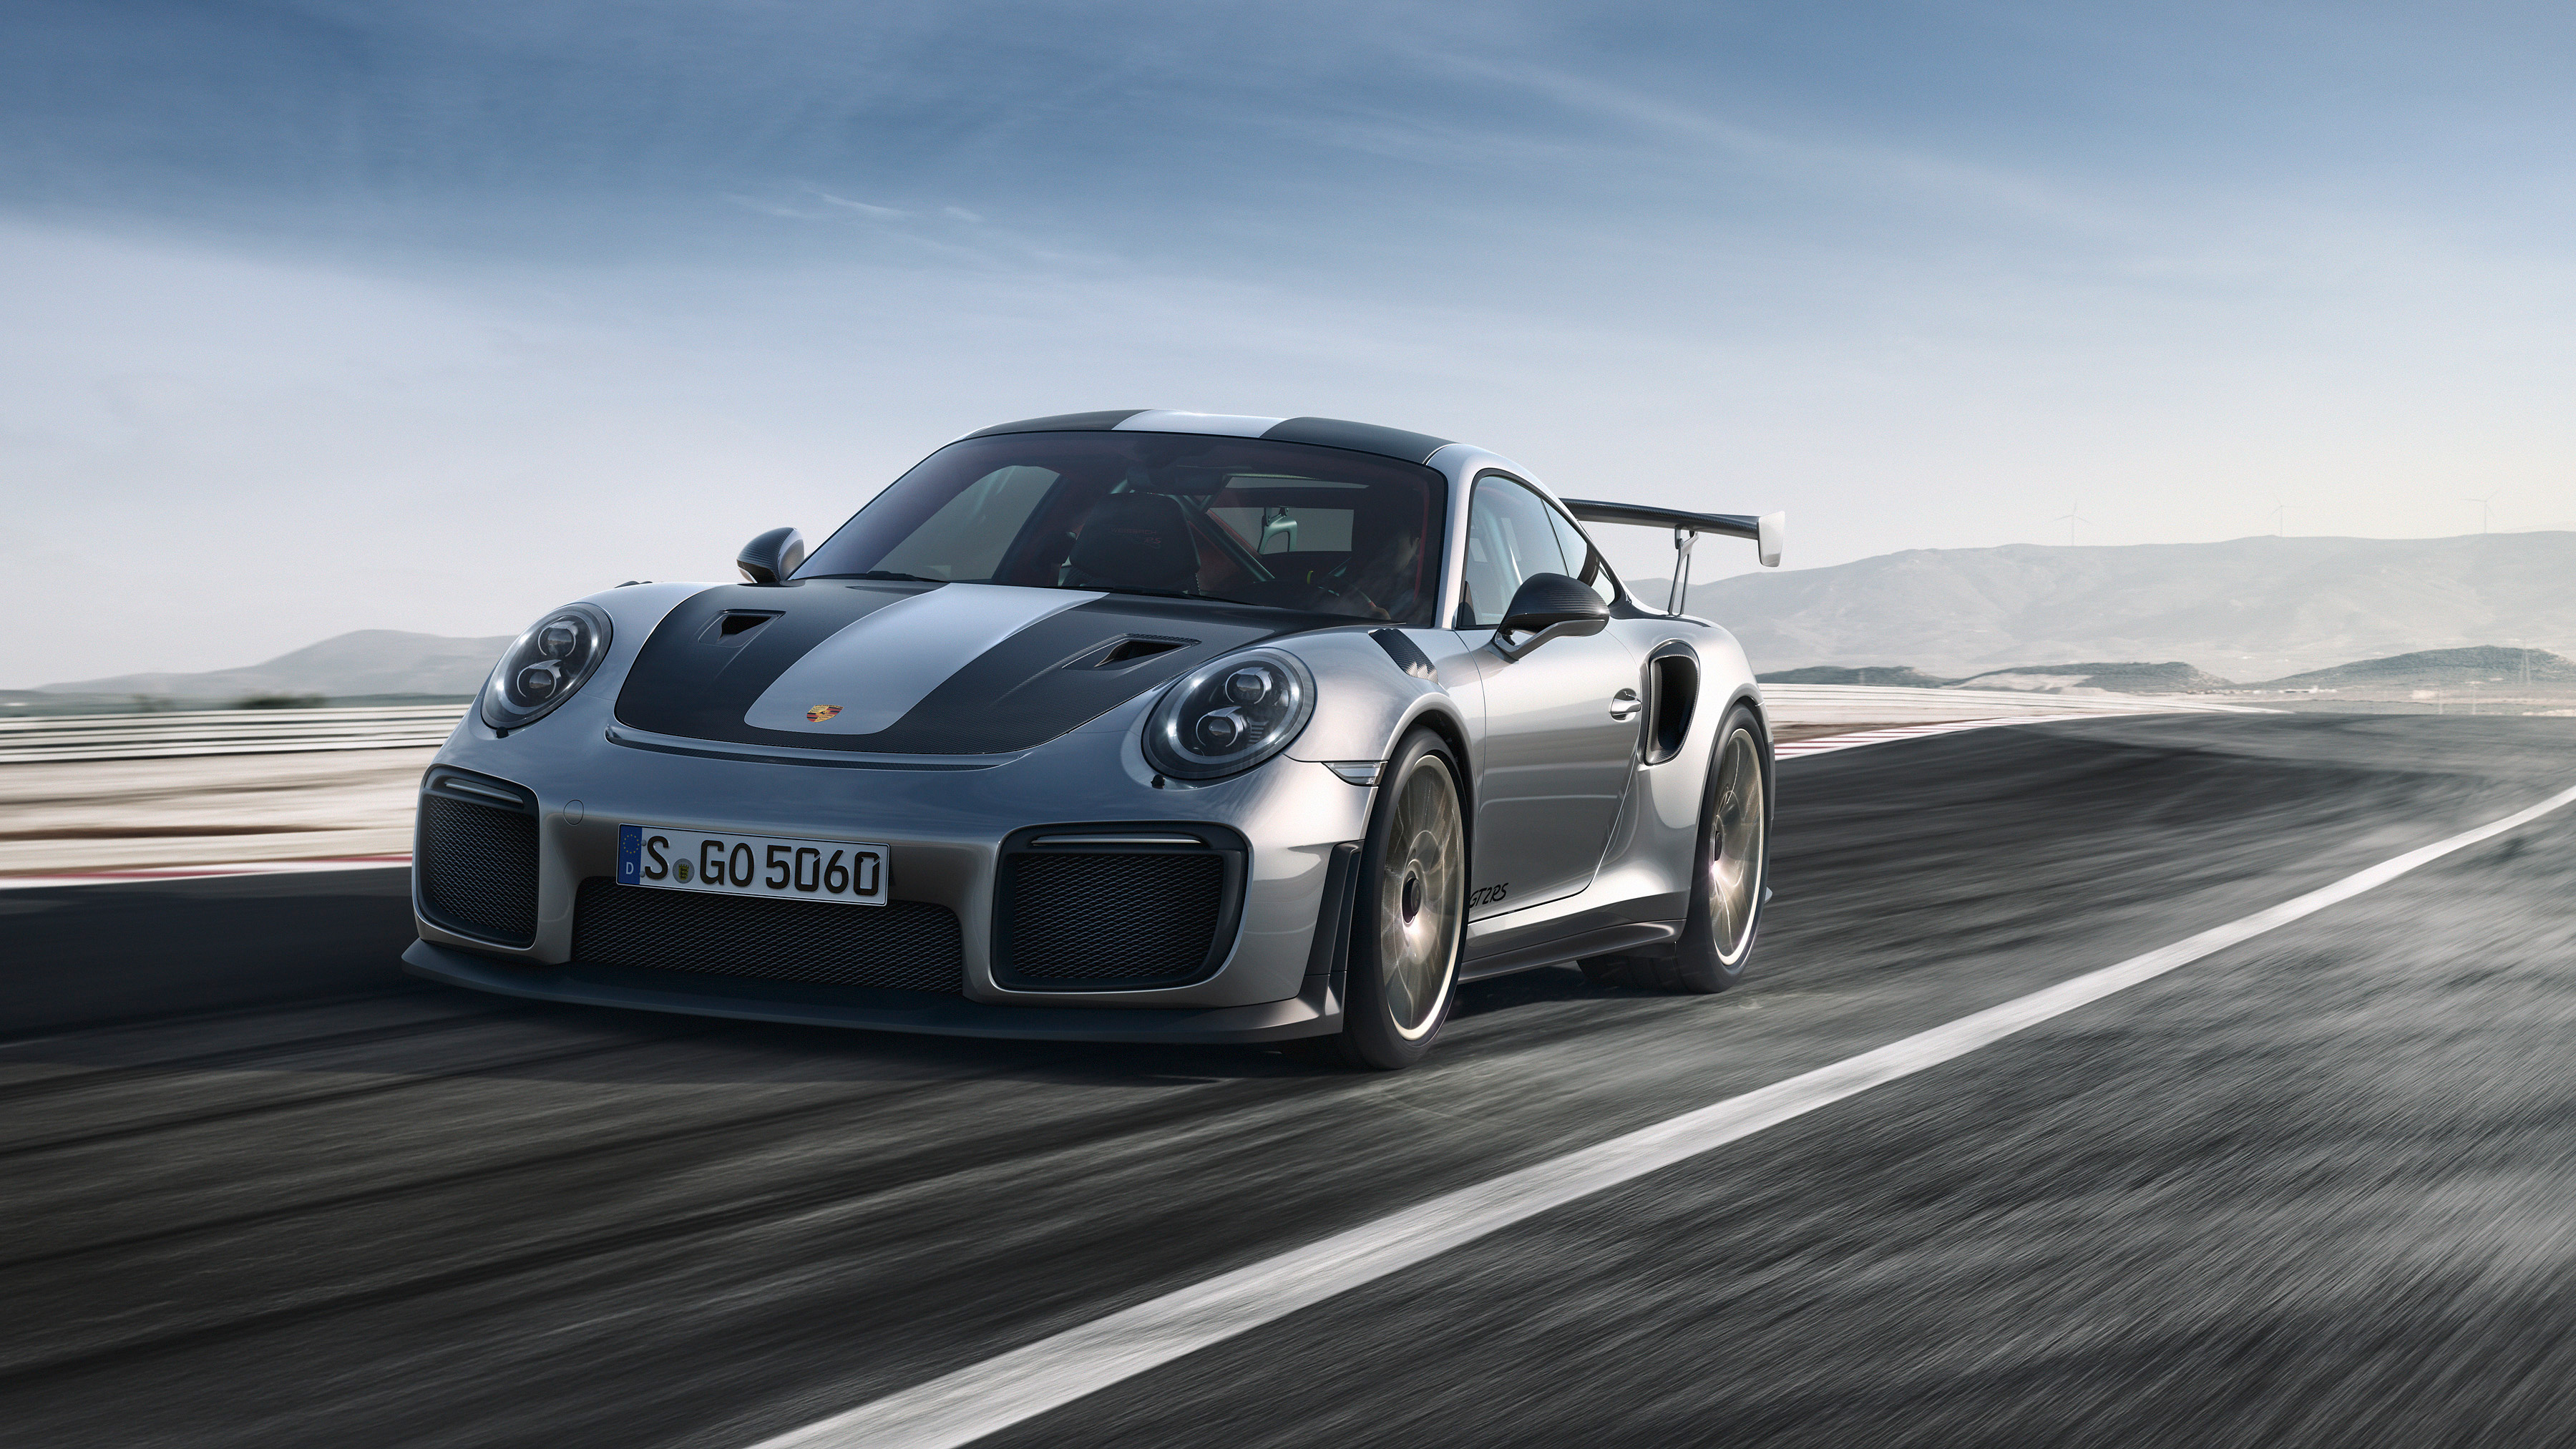 porsche 911 gt2 rs hd cars 4k wallpapers images backgrounds photos and pictures. Black Bedroom Furniture Sets. Home Design Ideas